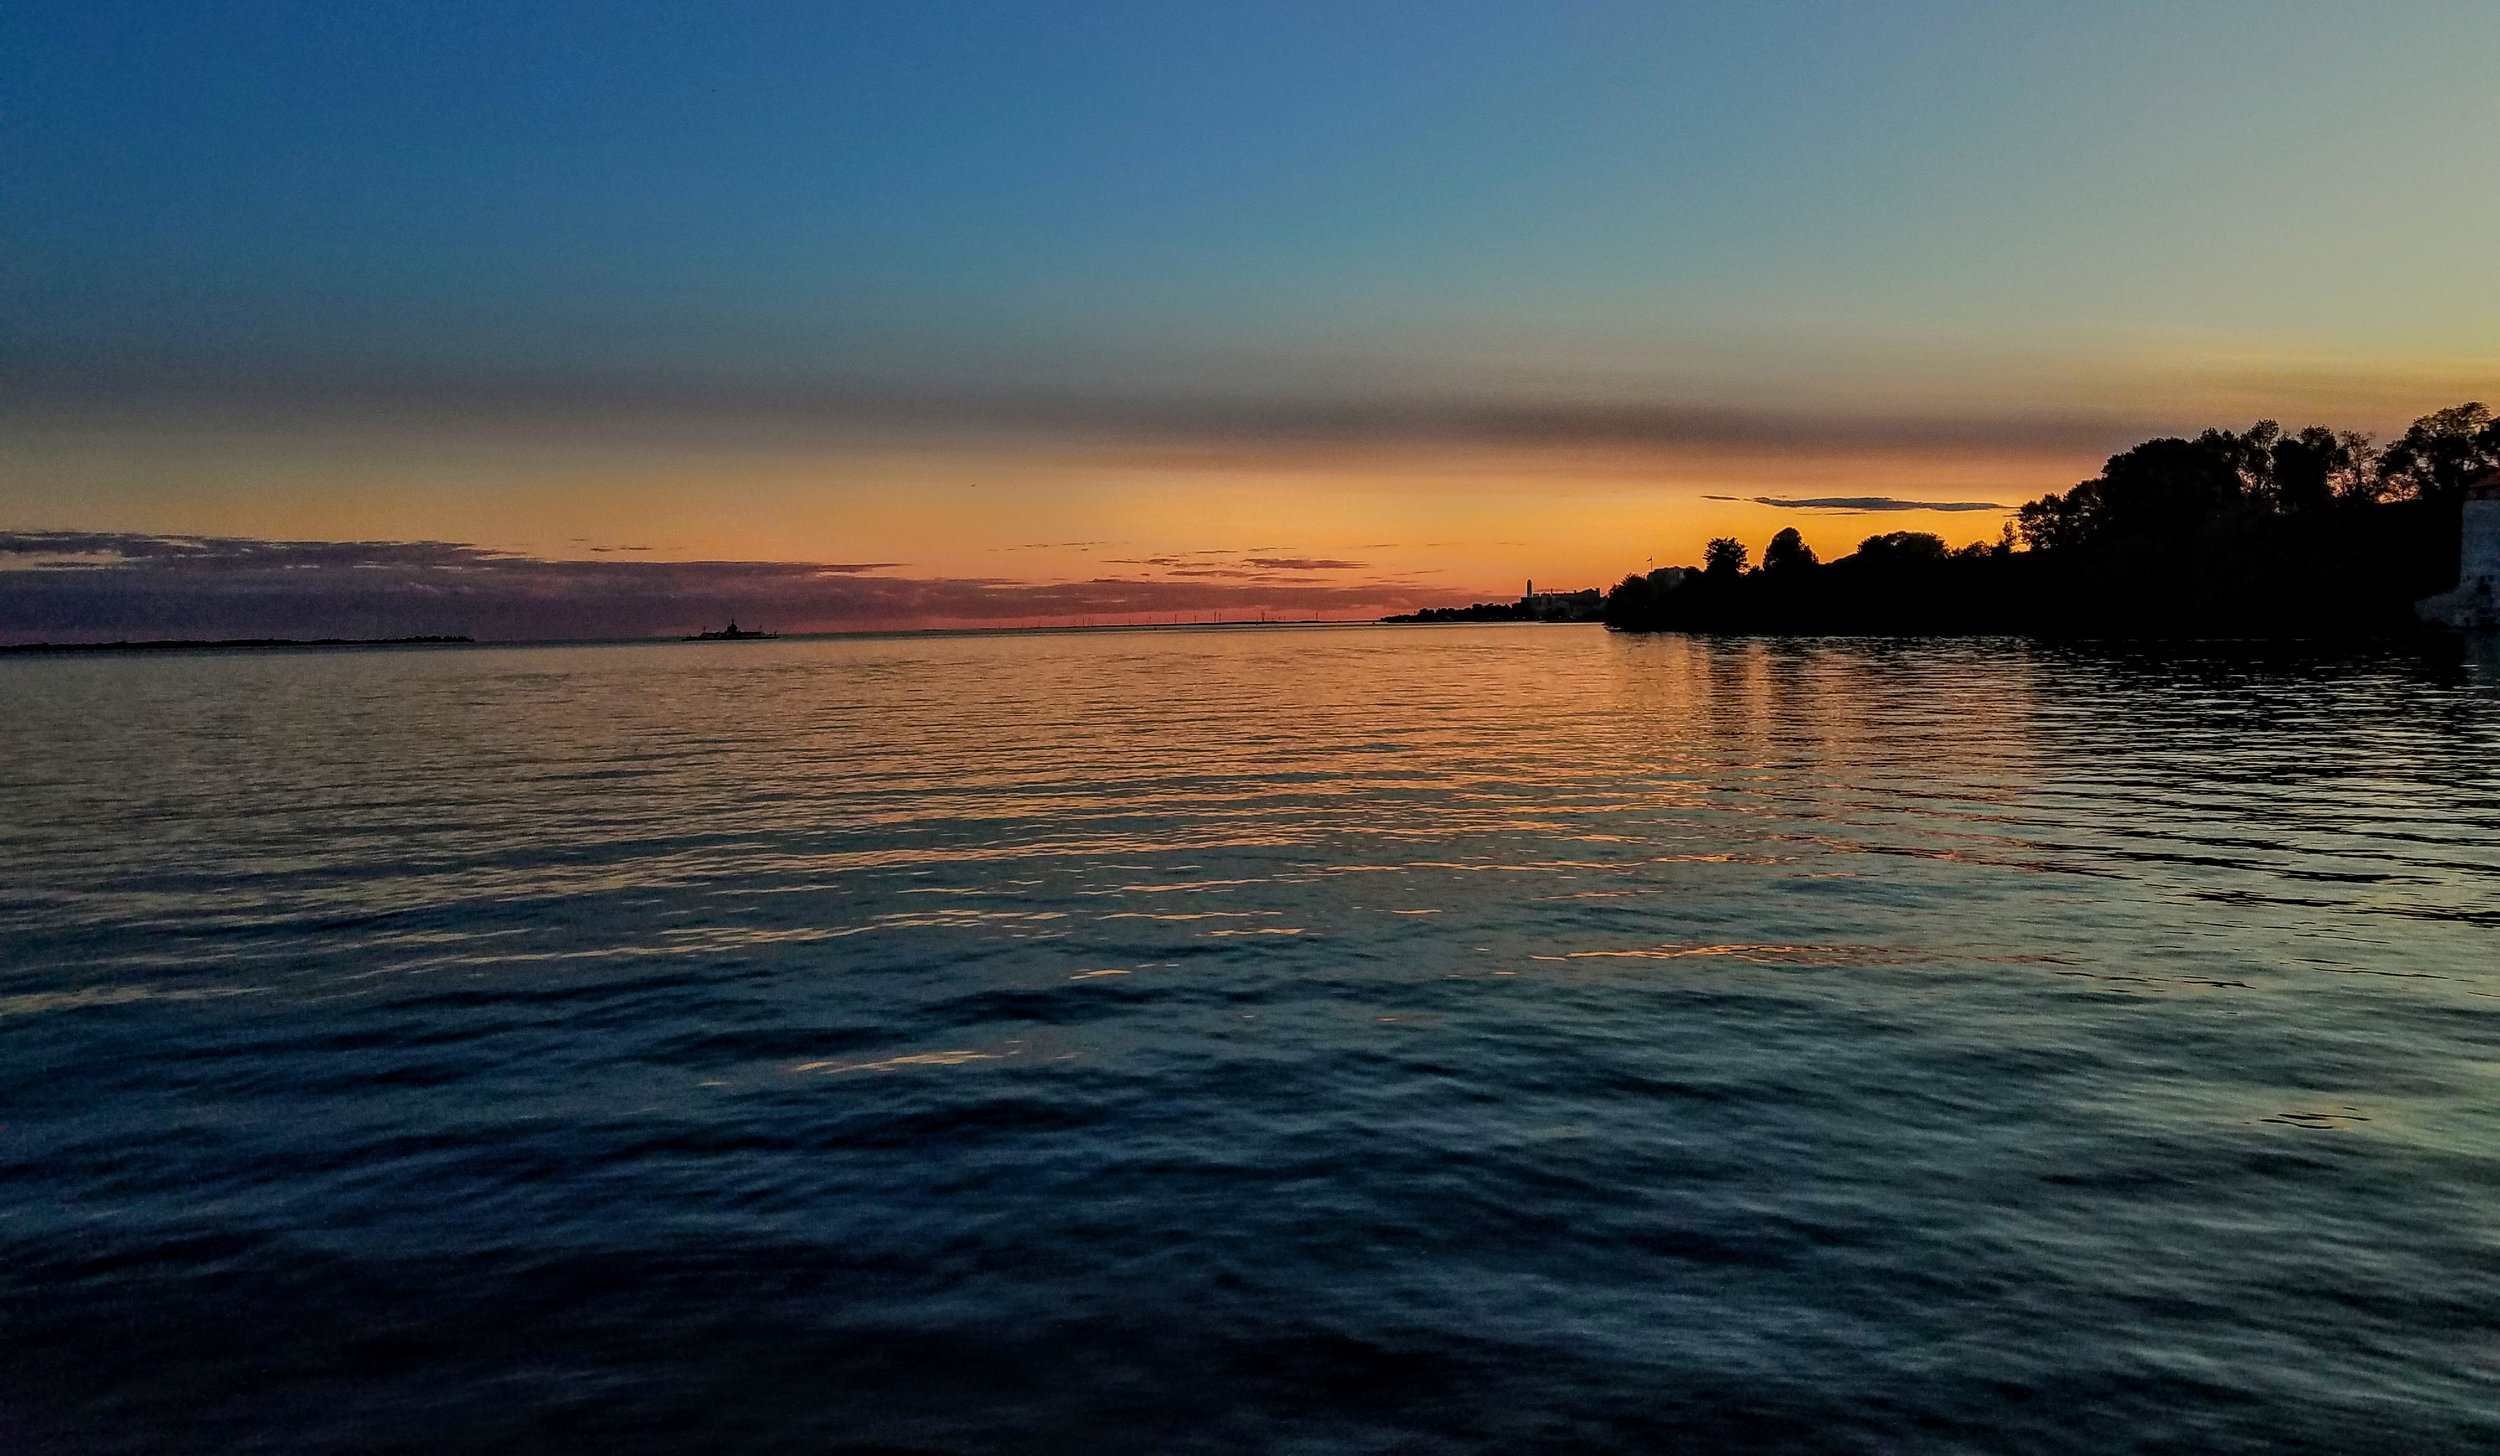 The first summer sunset at anchor in Kingston, ON